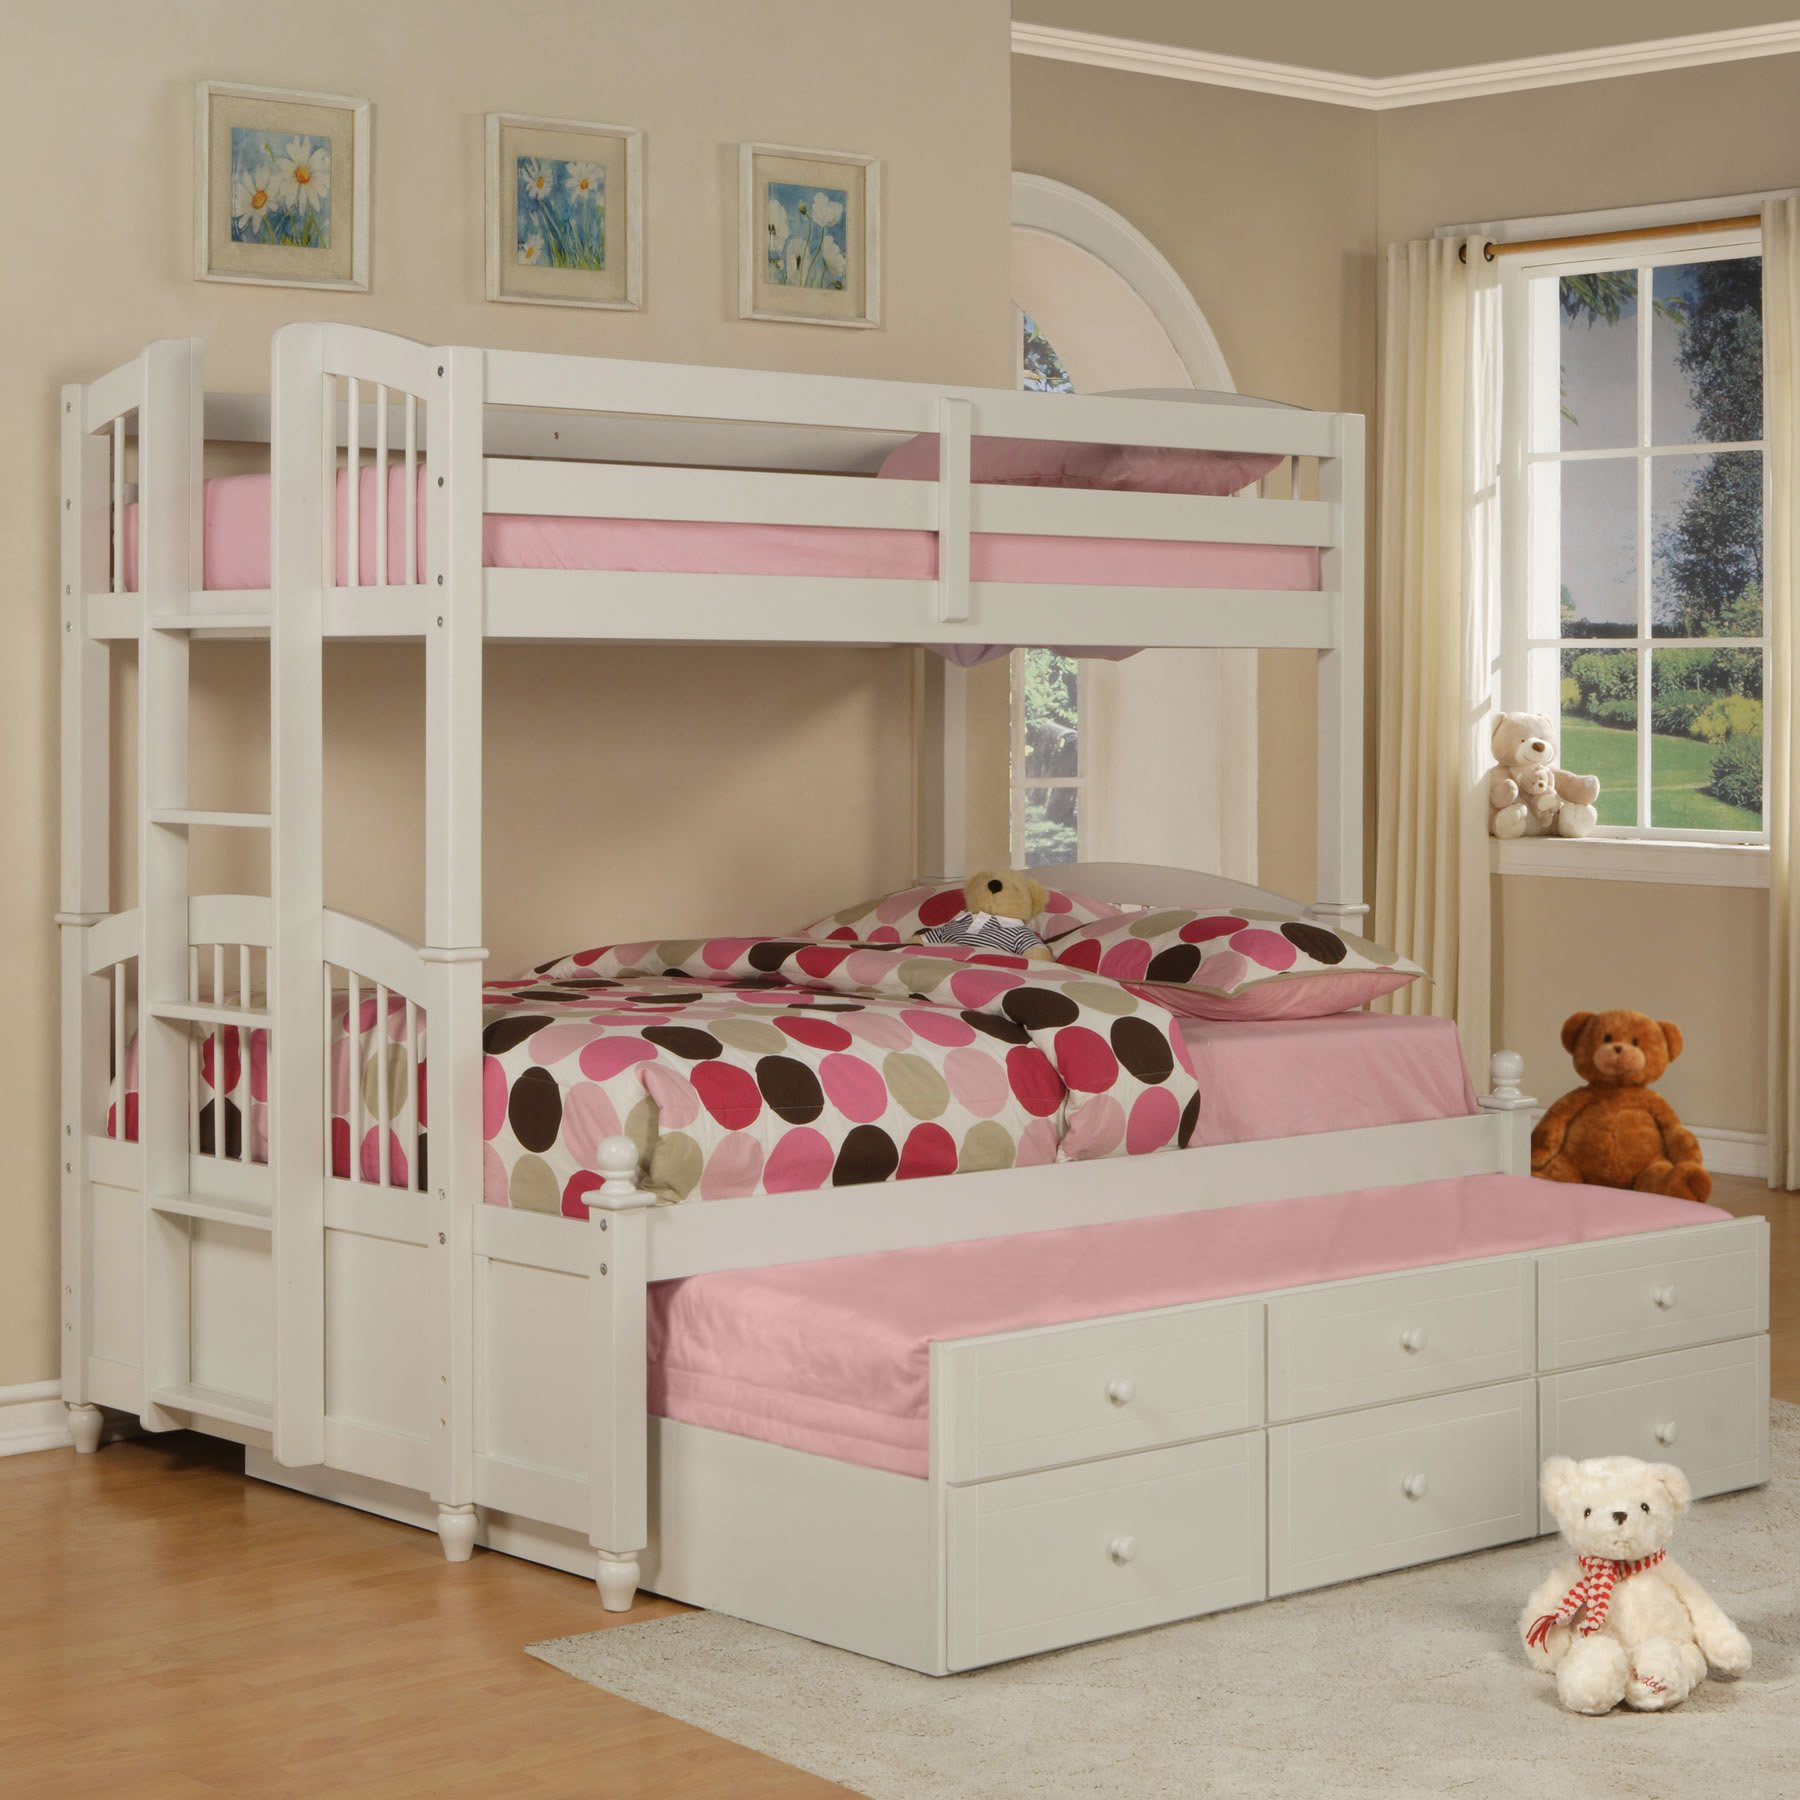 3 Bed Bunk Beds For Kids: Best Shopping Tips